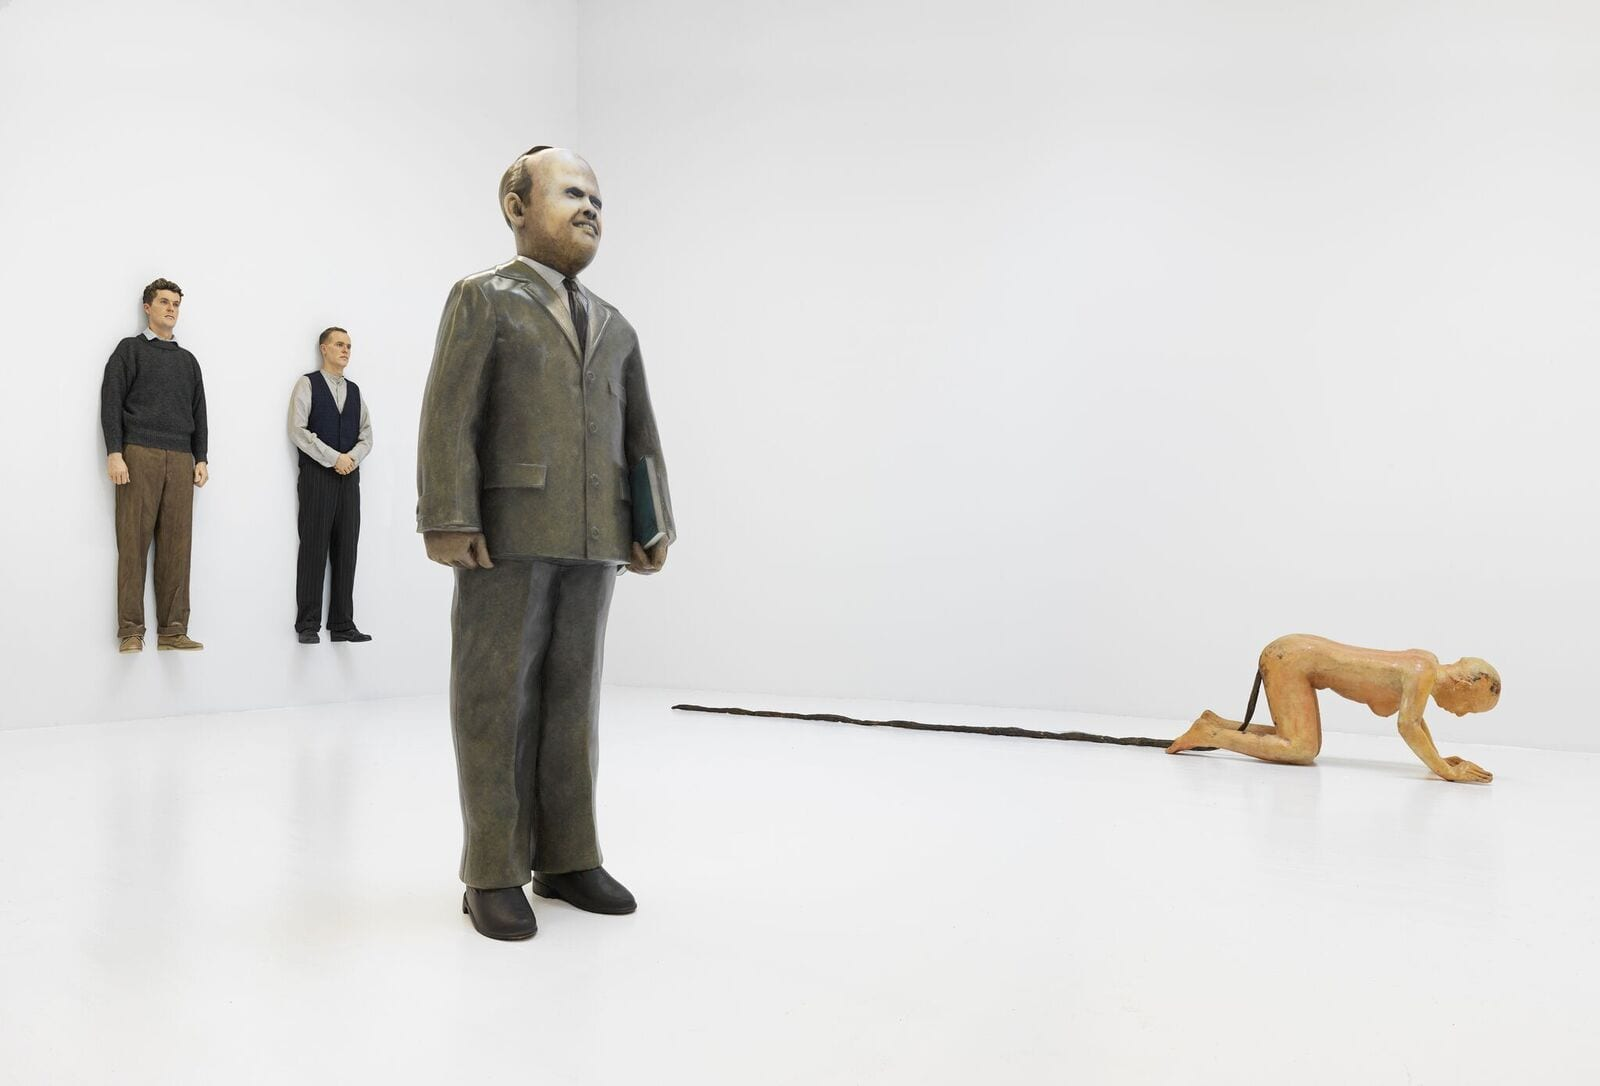 People installation, Jeffrey Deitch